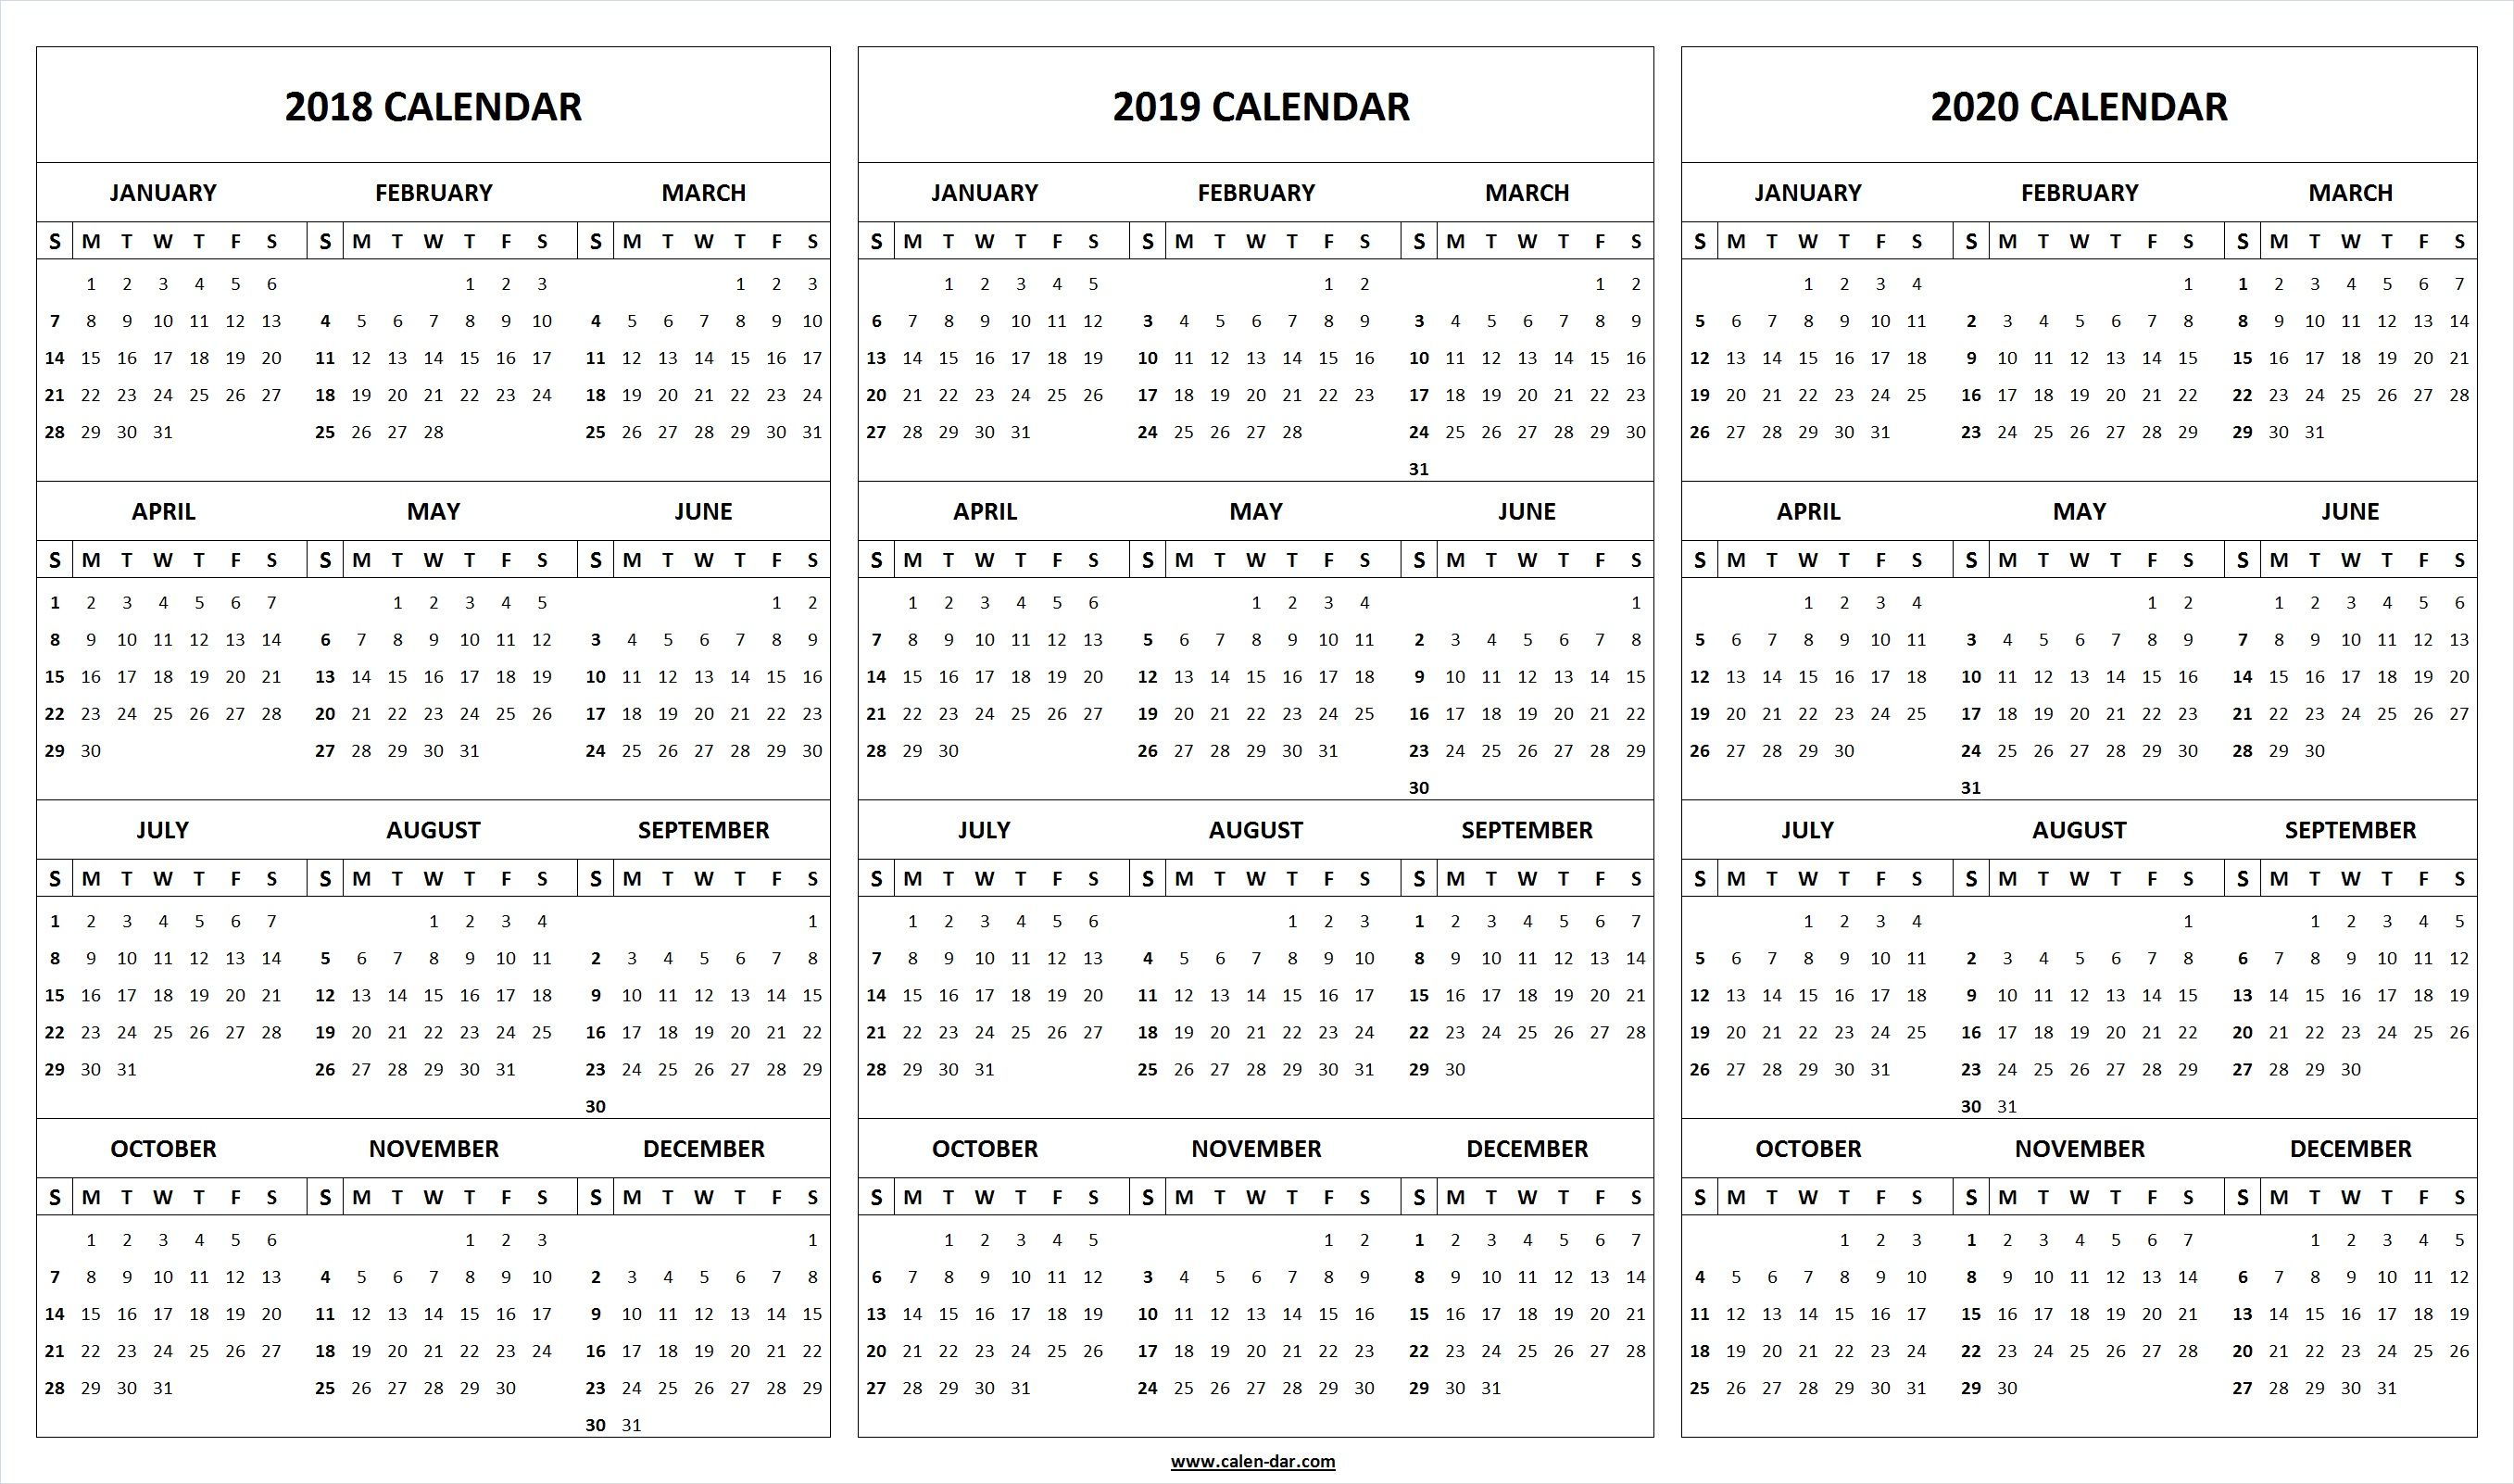 Print Blank 2018 2019 2020 Calendar Template | Organize! | 2019 intended for Free Printable 3 Year Calendar 2019 2020 2021